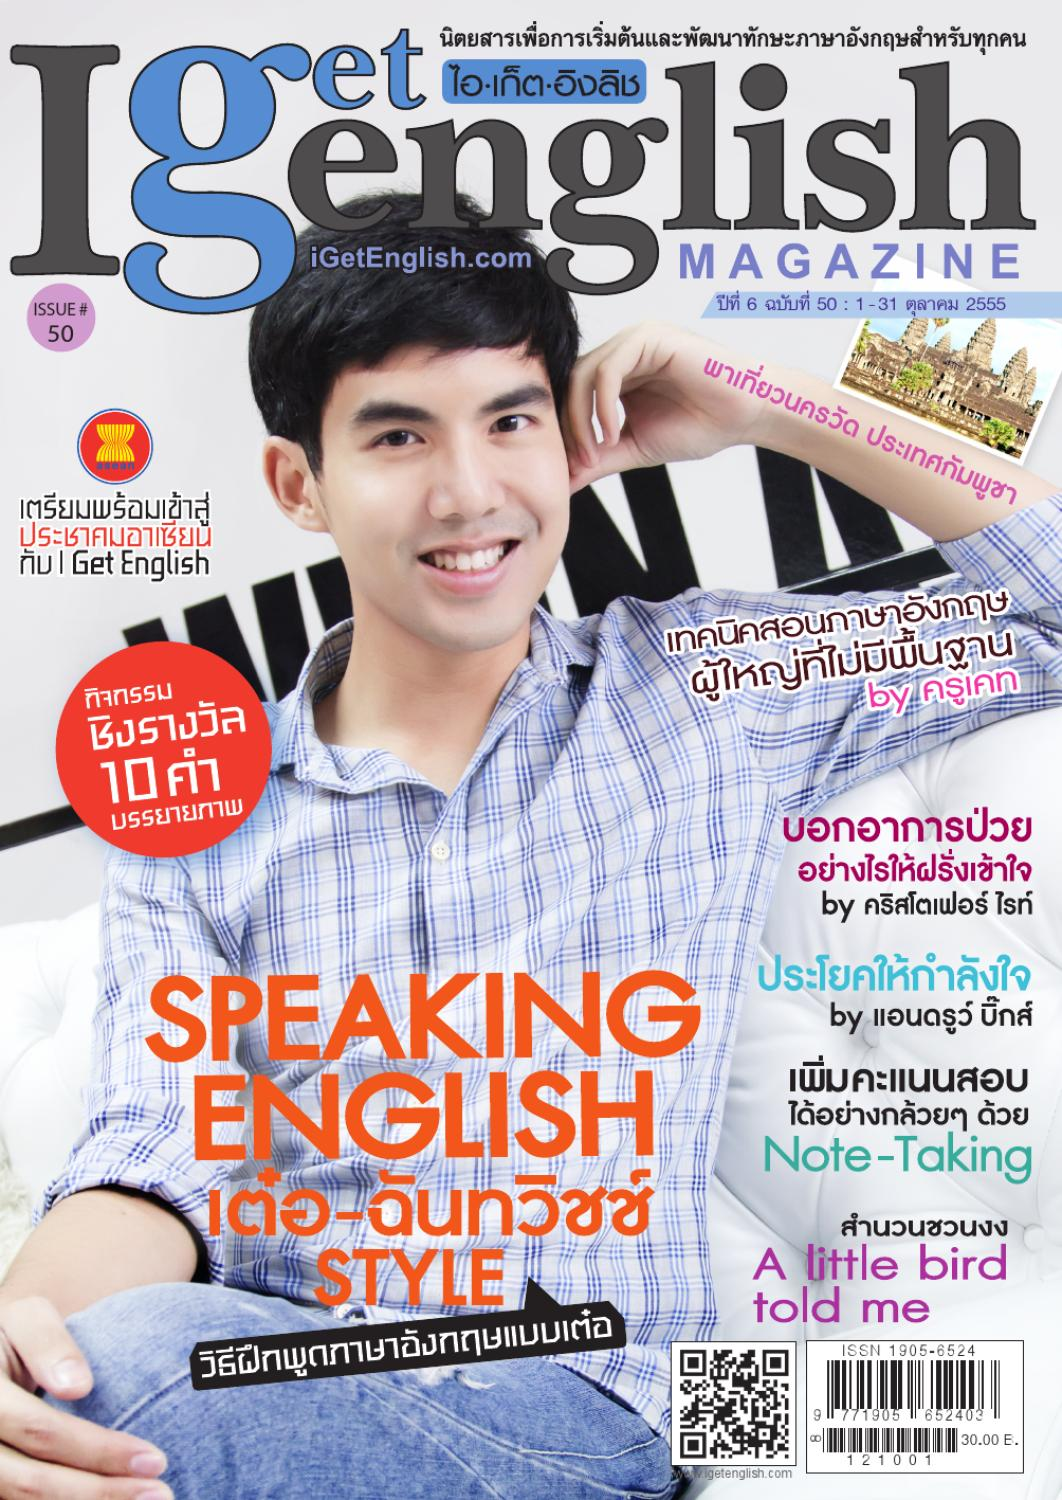 腺+��\L�9������i-9`�_นิตยสารIGetEnglishเล่ม50byMISPublishing-Issuu